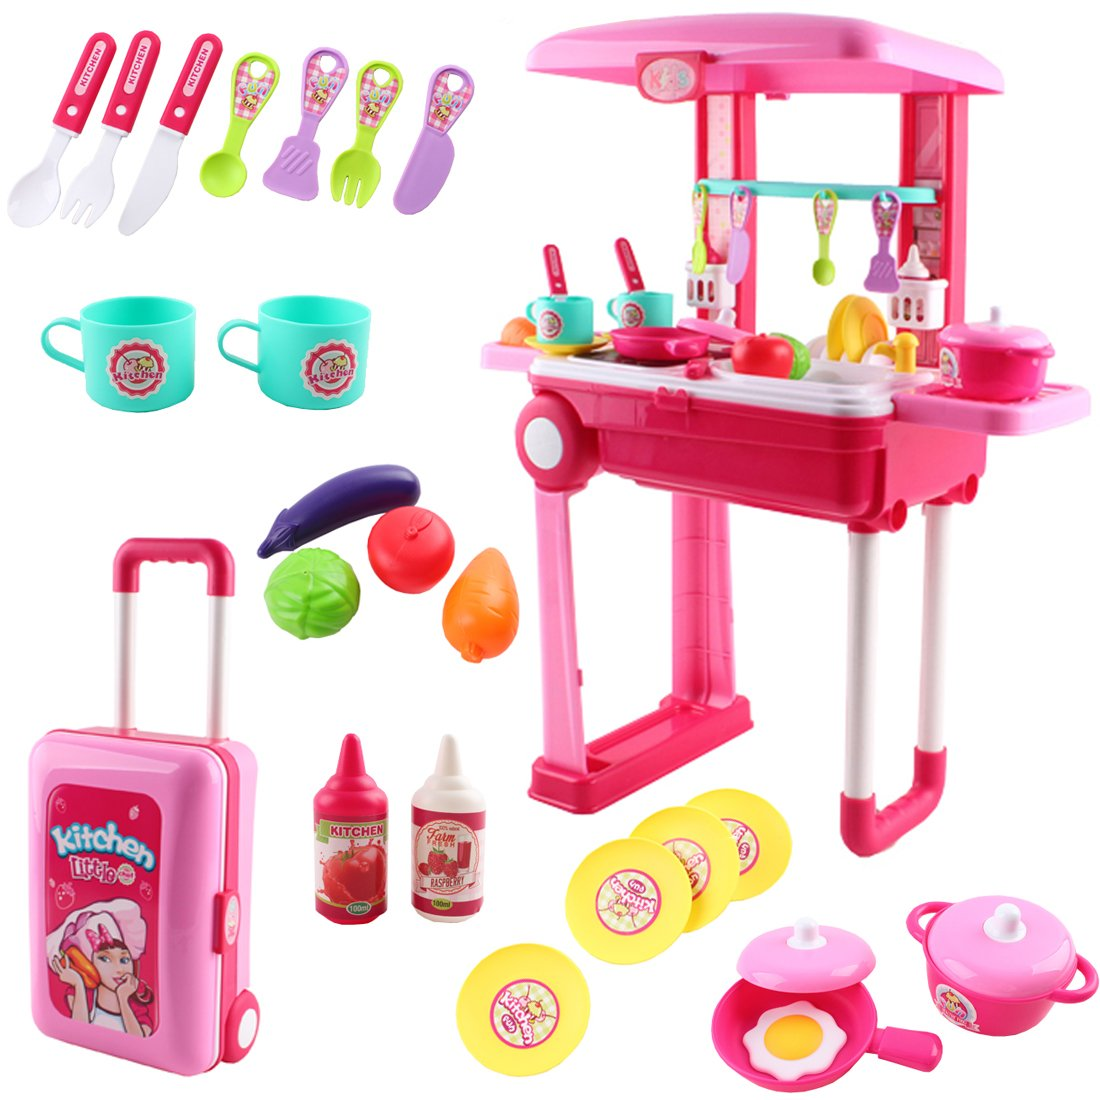 deAO SC-KP 2-in-1 Portable 'My Little Chef' Kitchen Suitcase Play Set with Sound, Lights and Accessories Included (Pink), 3-5 Years by deAO